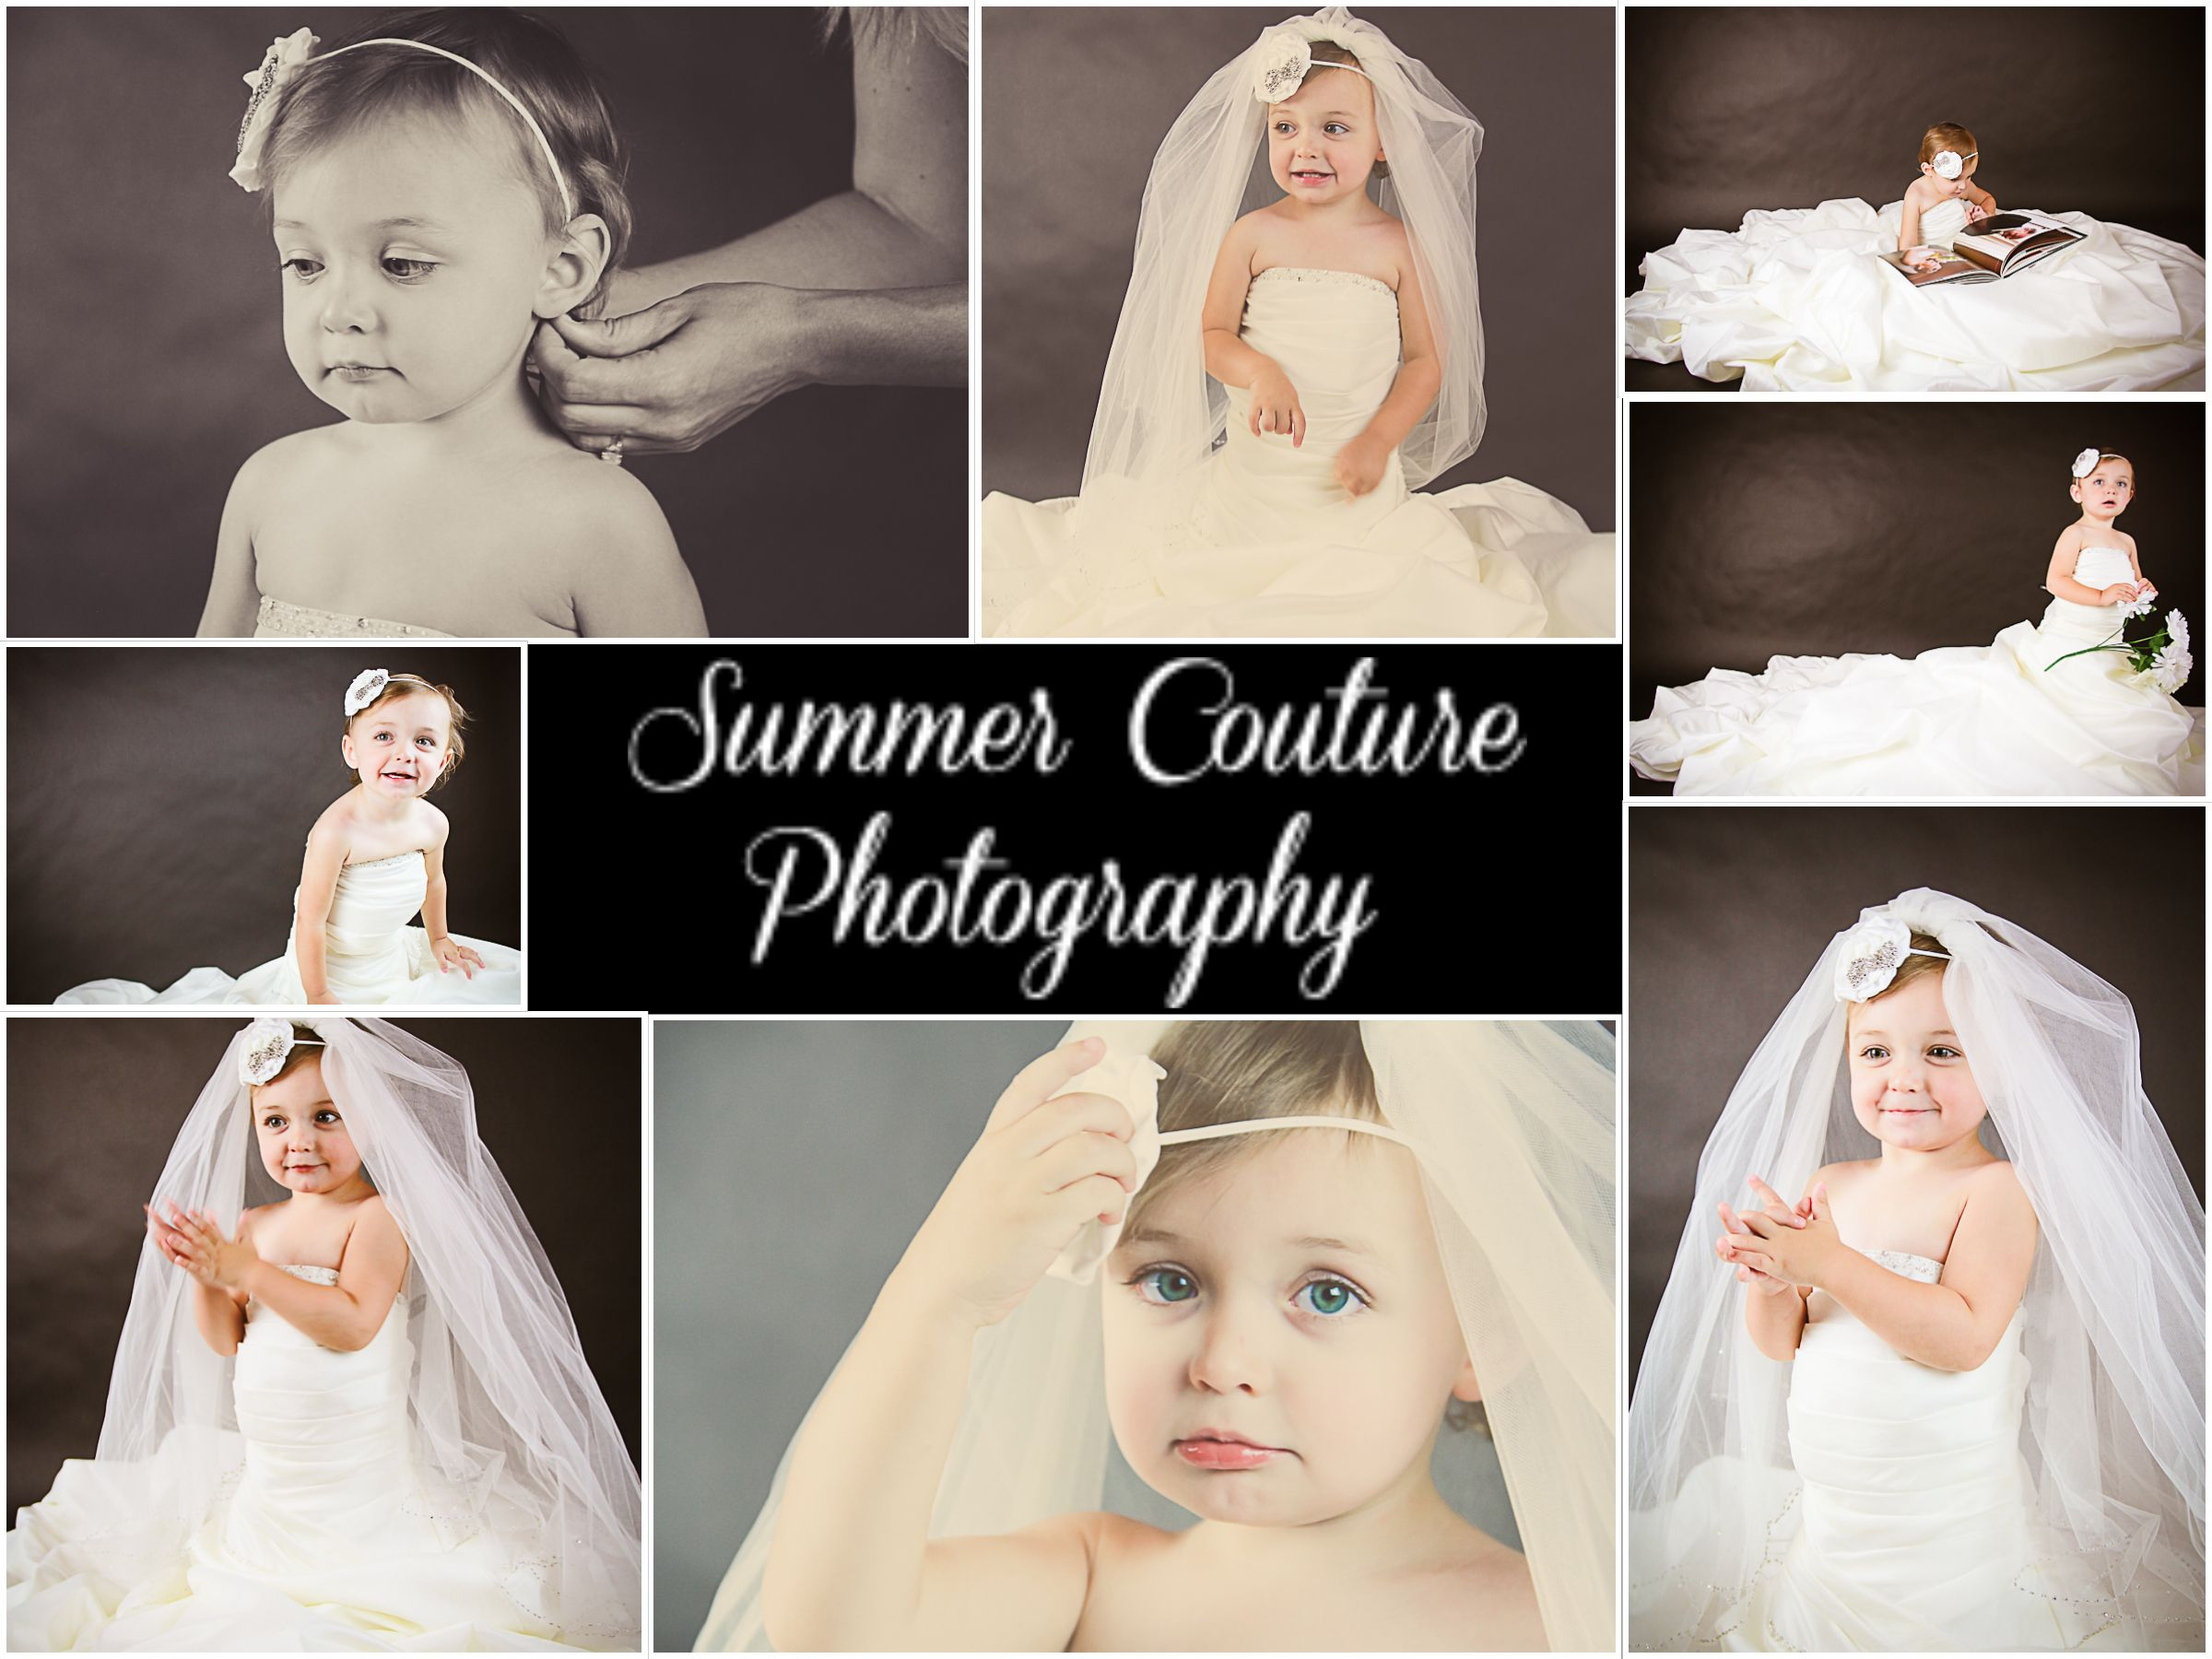 mom's wedding dress Daughter in mom s wedding dress photo shoot wedding keepsake s little girl in mom s wedding